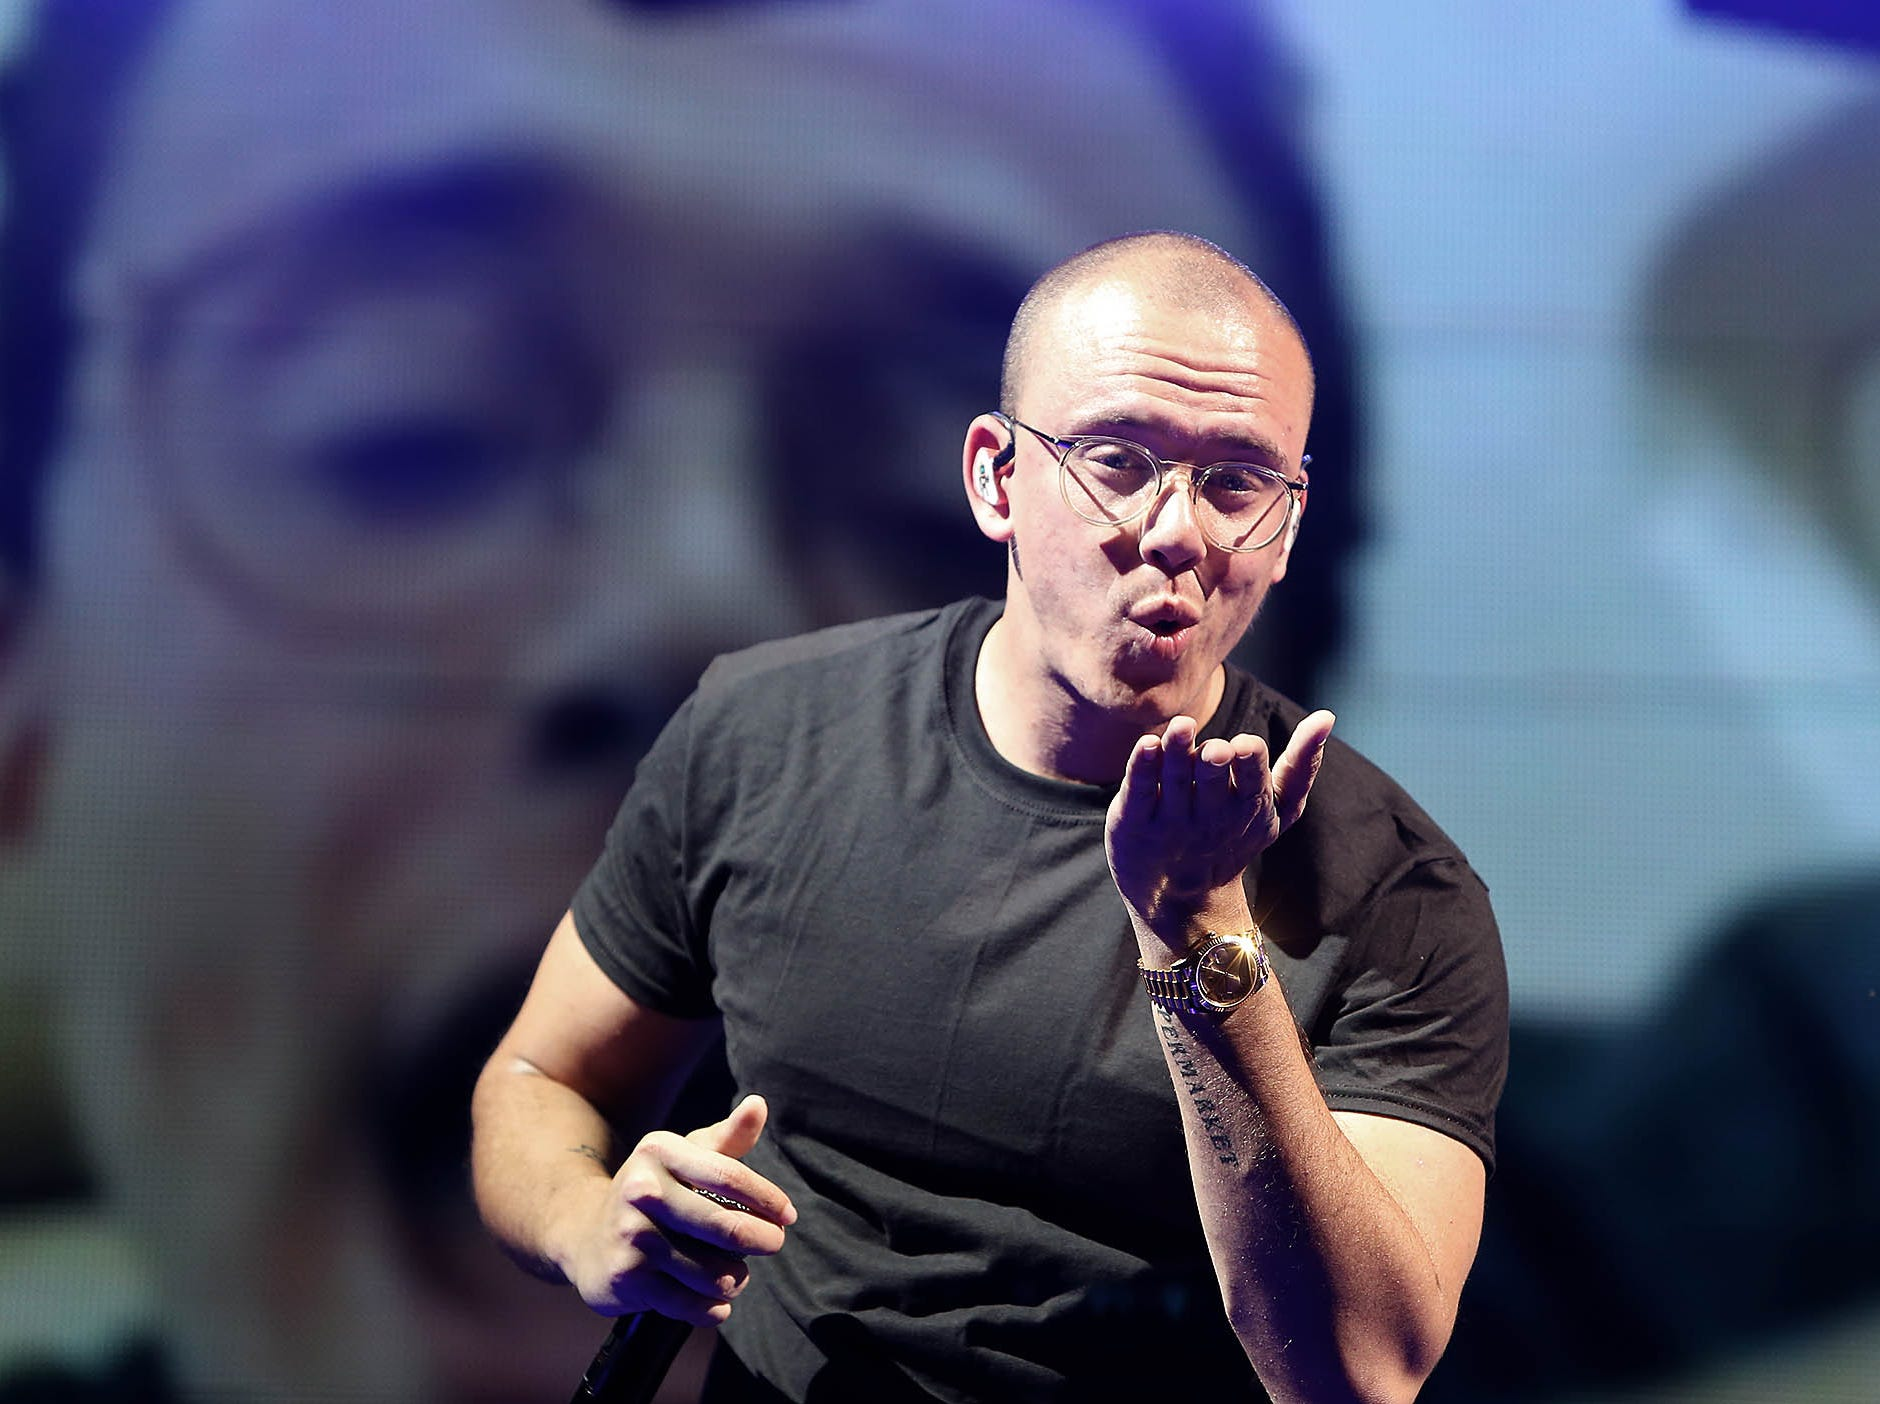 Logic blows a kiss to the crowd during The Bobby Tarantino vs Everybody Tour performance at Ak-Chin Pavilion in Phoenix on Wednesday, July 25, 2018.